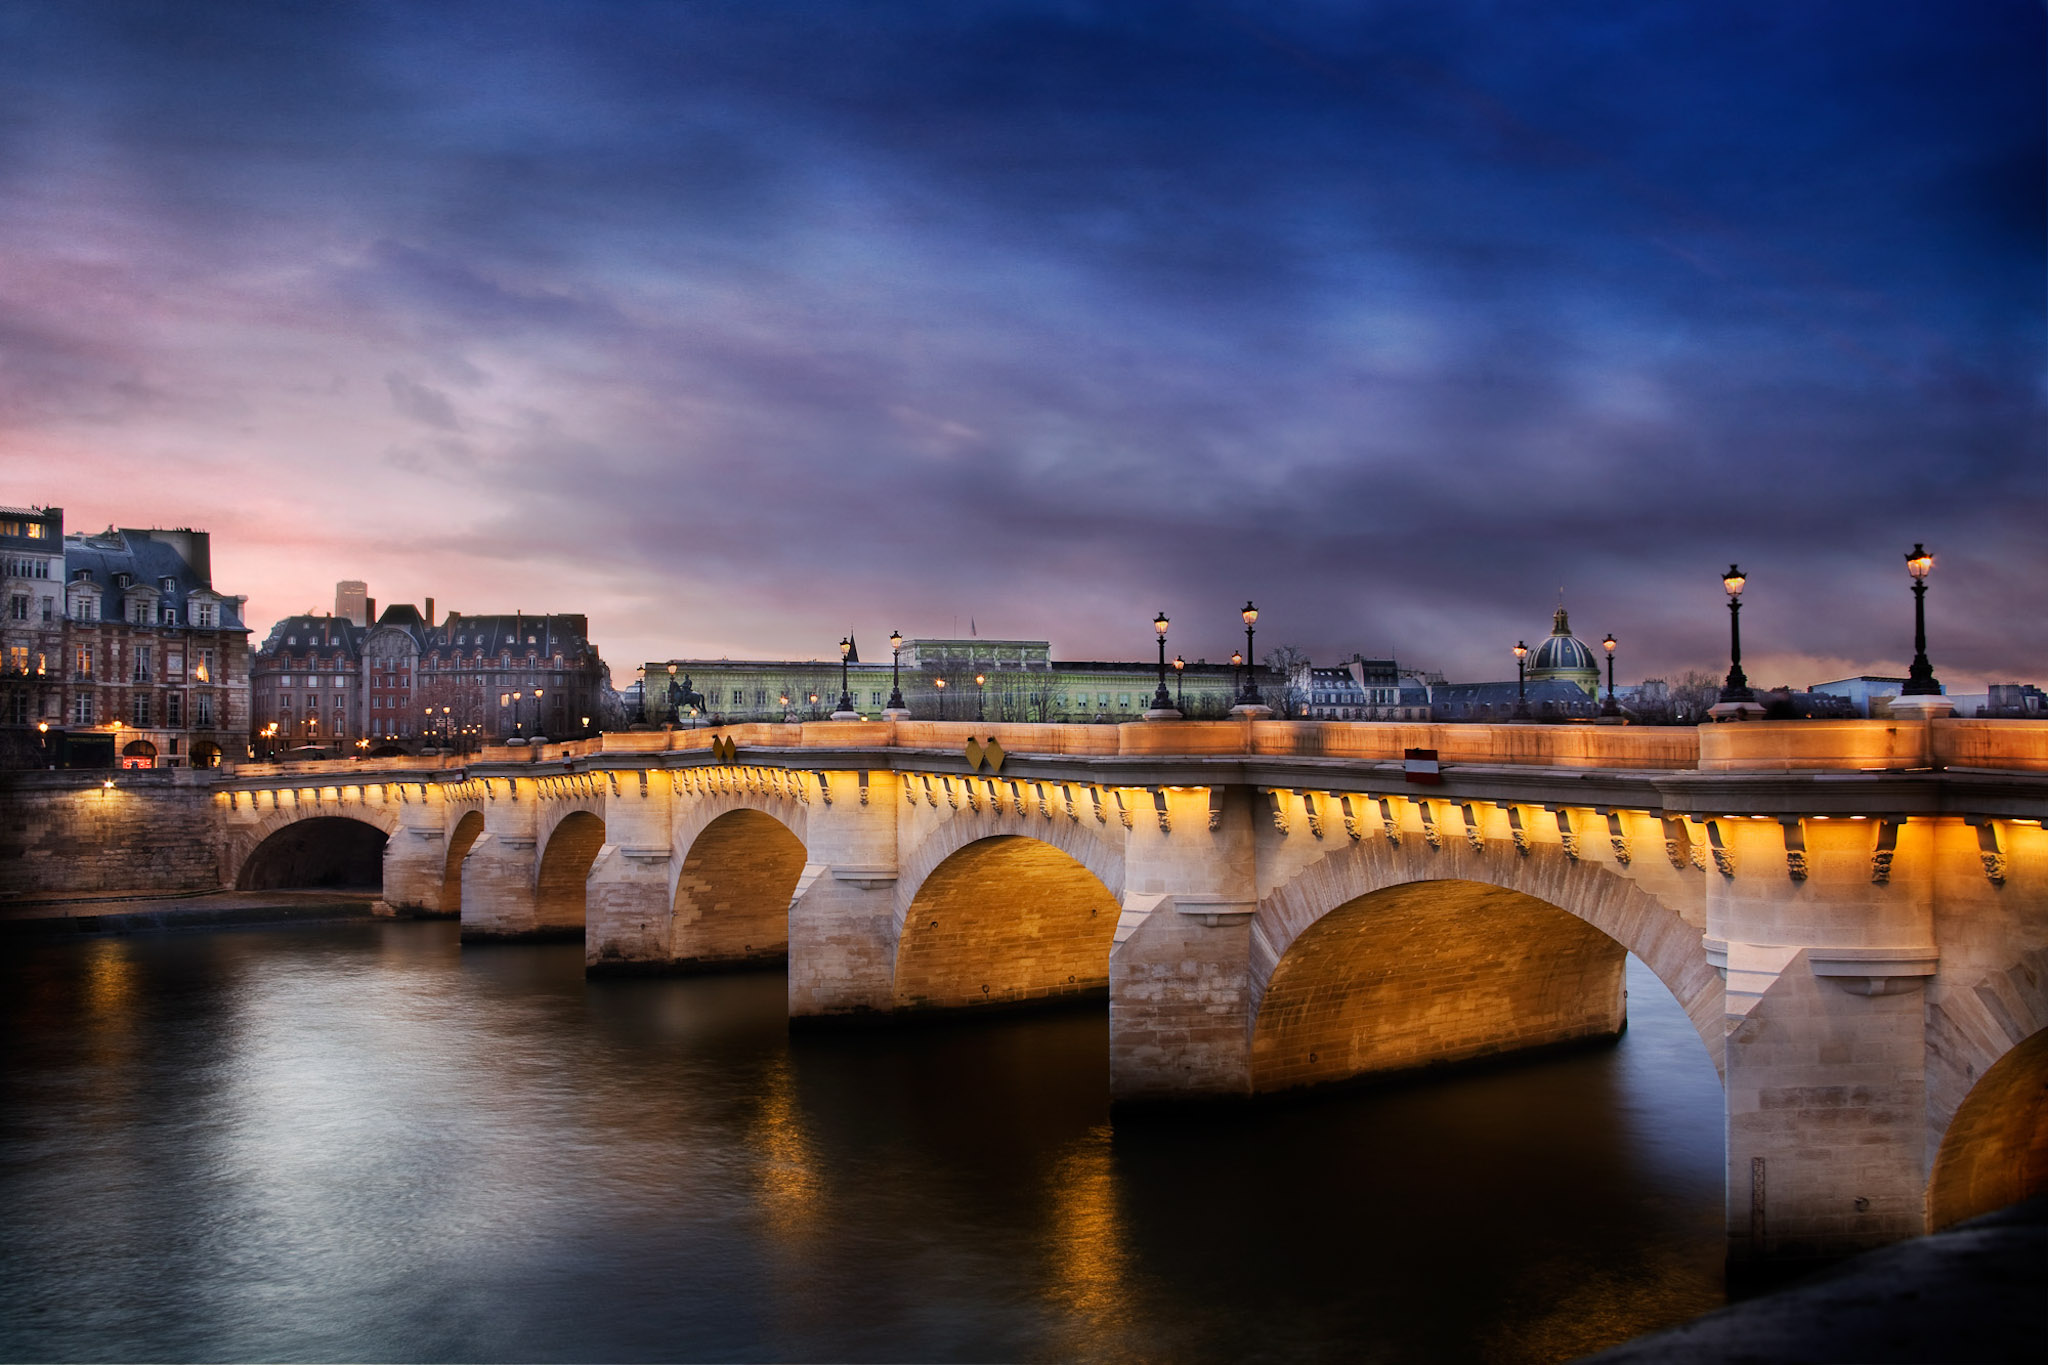 The first shot of the Pont Neuf that I got that I really liked. I have shot this bridge over 80 times with many different technics.